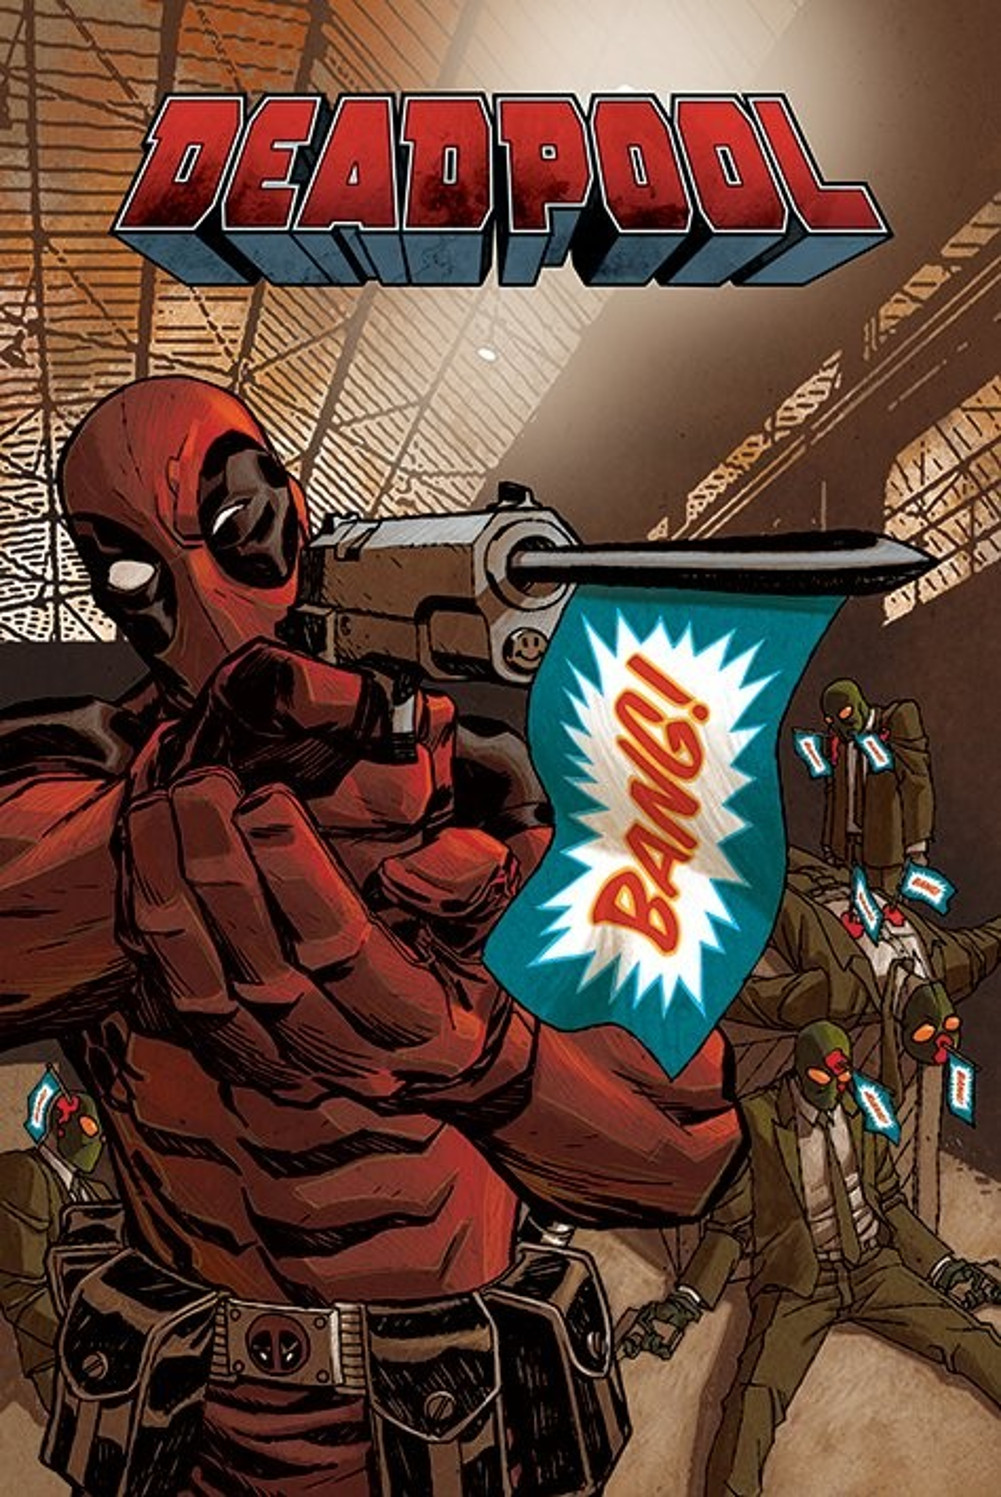 Deadpool bang comic book art print poster 22x34 ebay picture 9 of 9 gumiabroncs Image collections